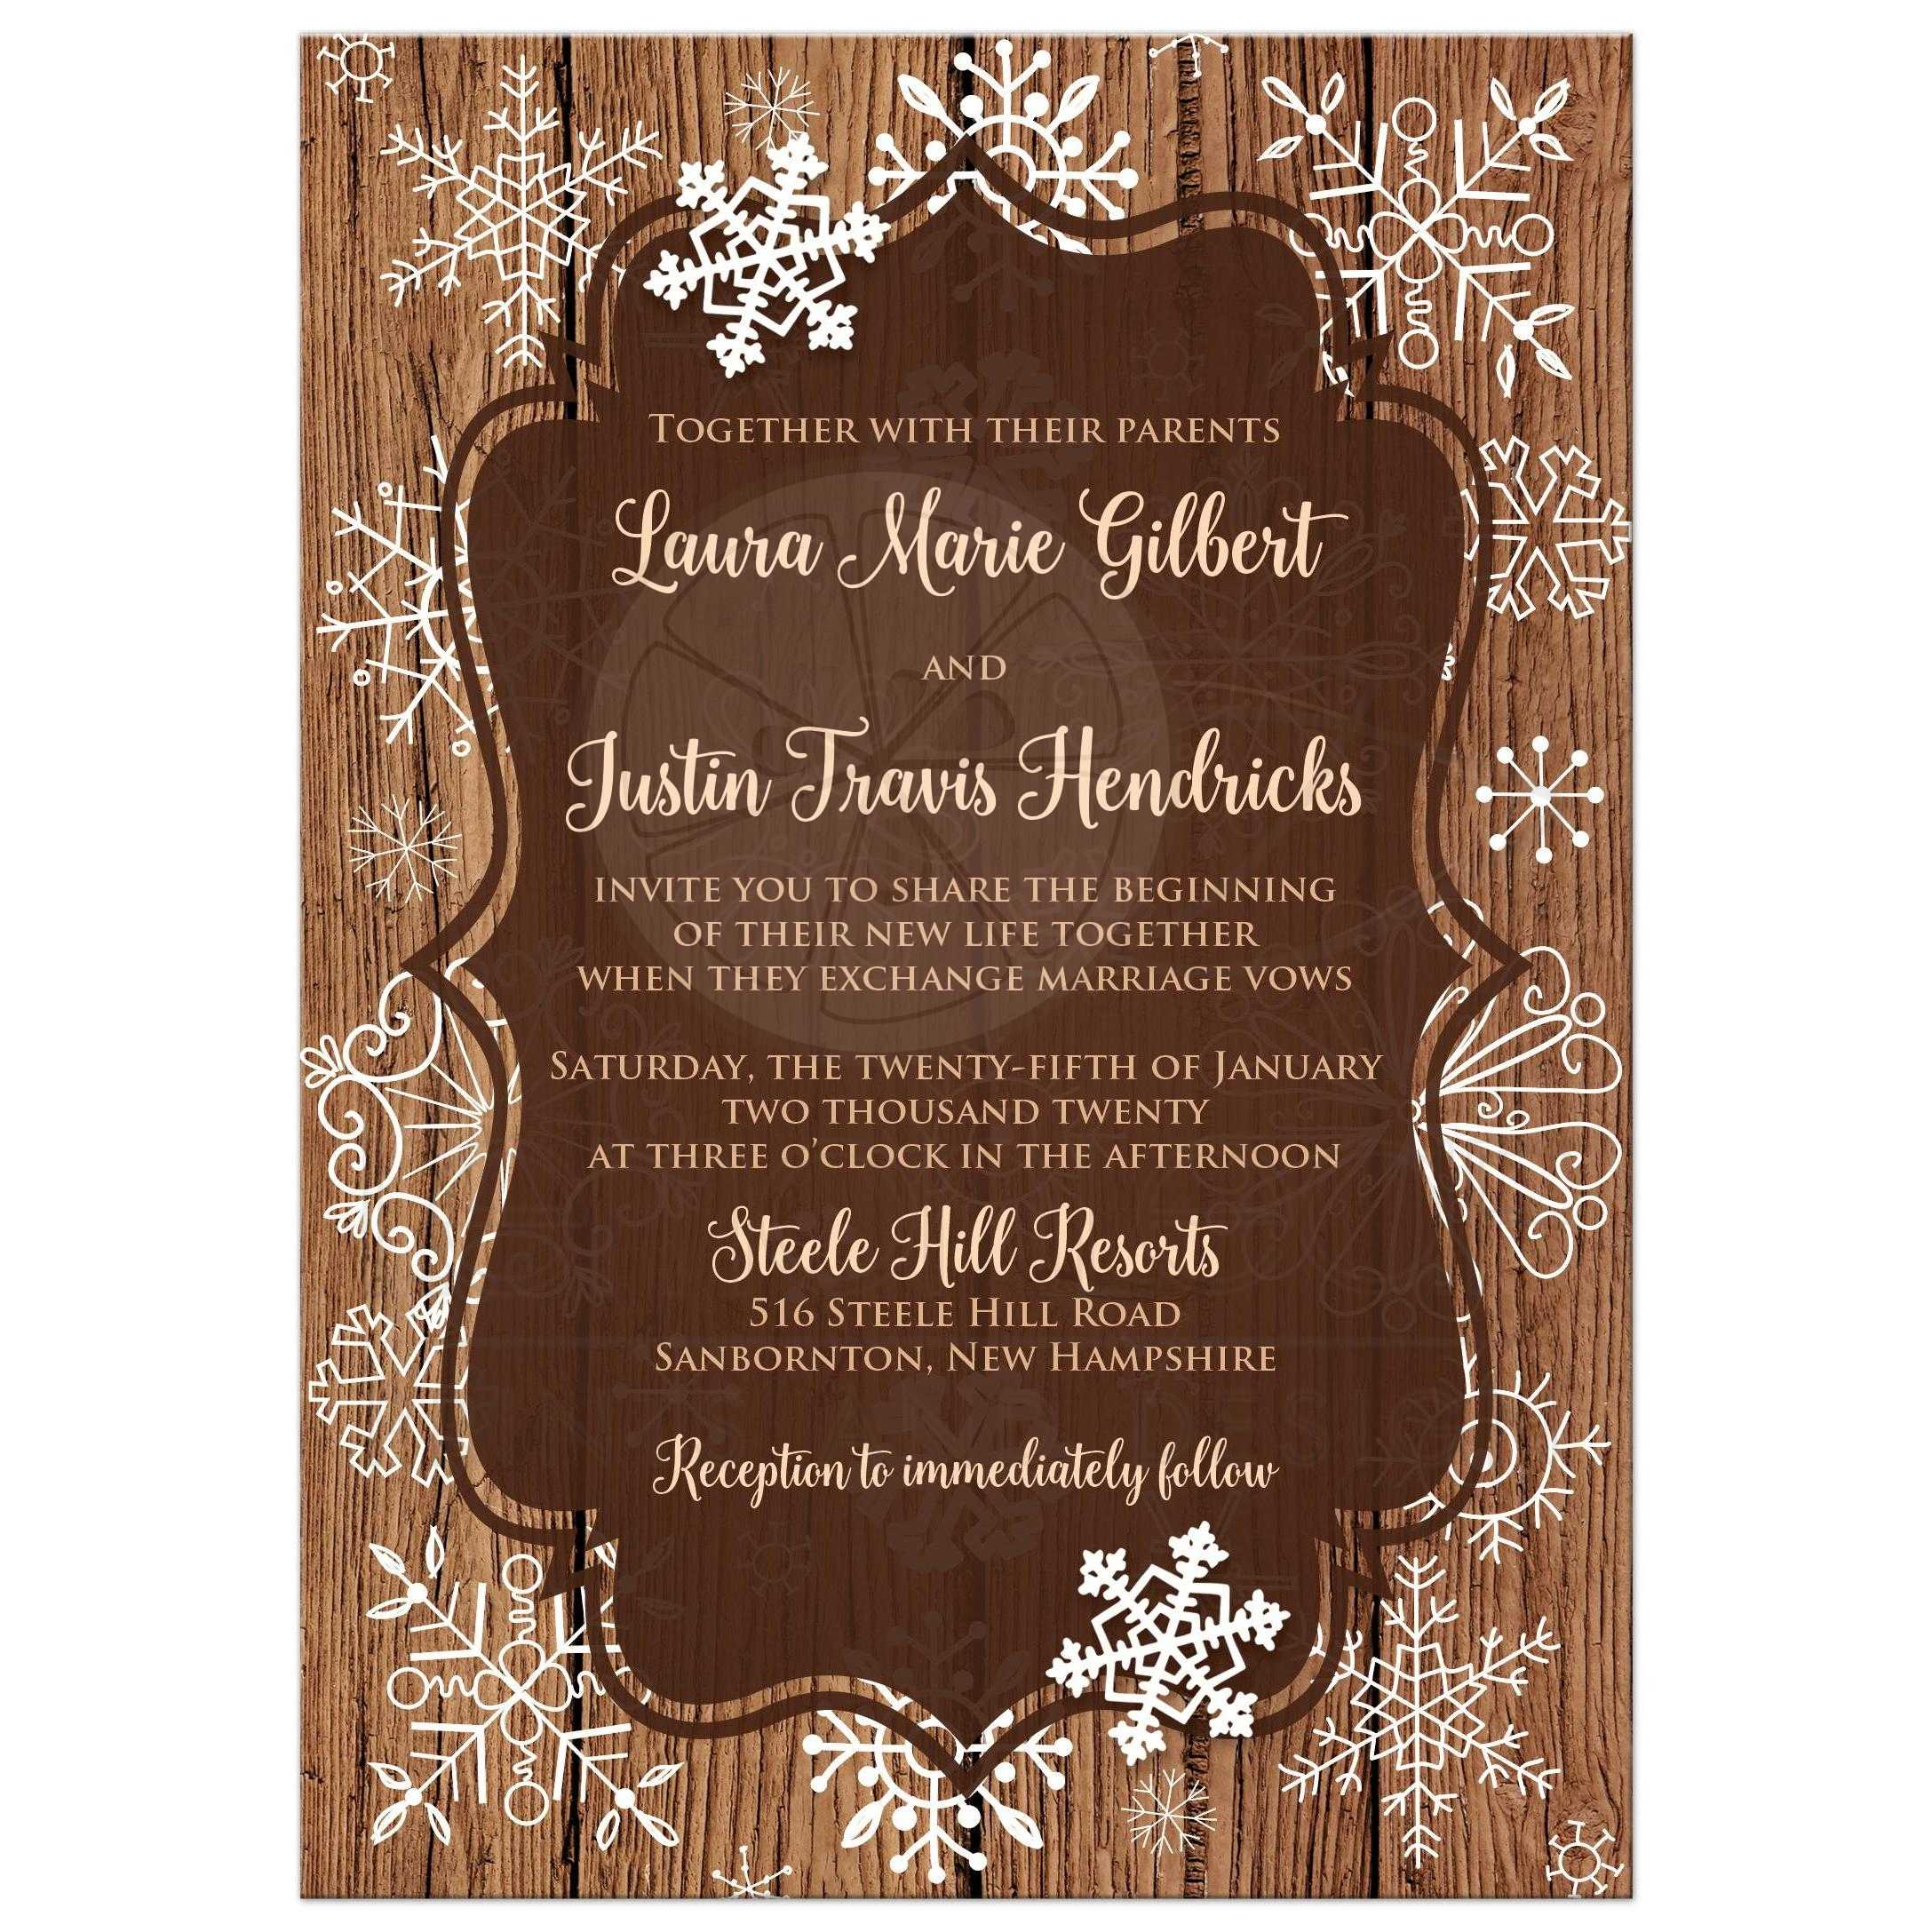 Rustic Brown Wood Grain Look Winter Wedding Invitation With White Whimsical Hand Drawn Snowflakes And